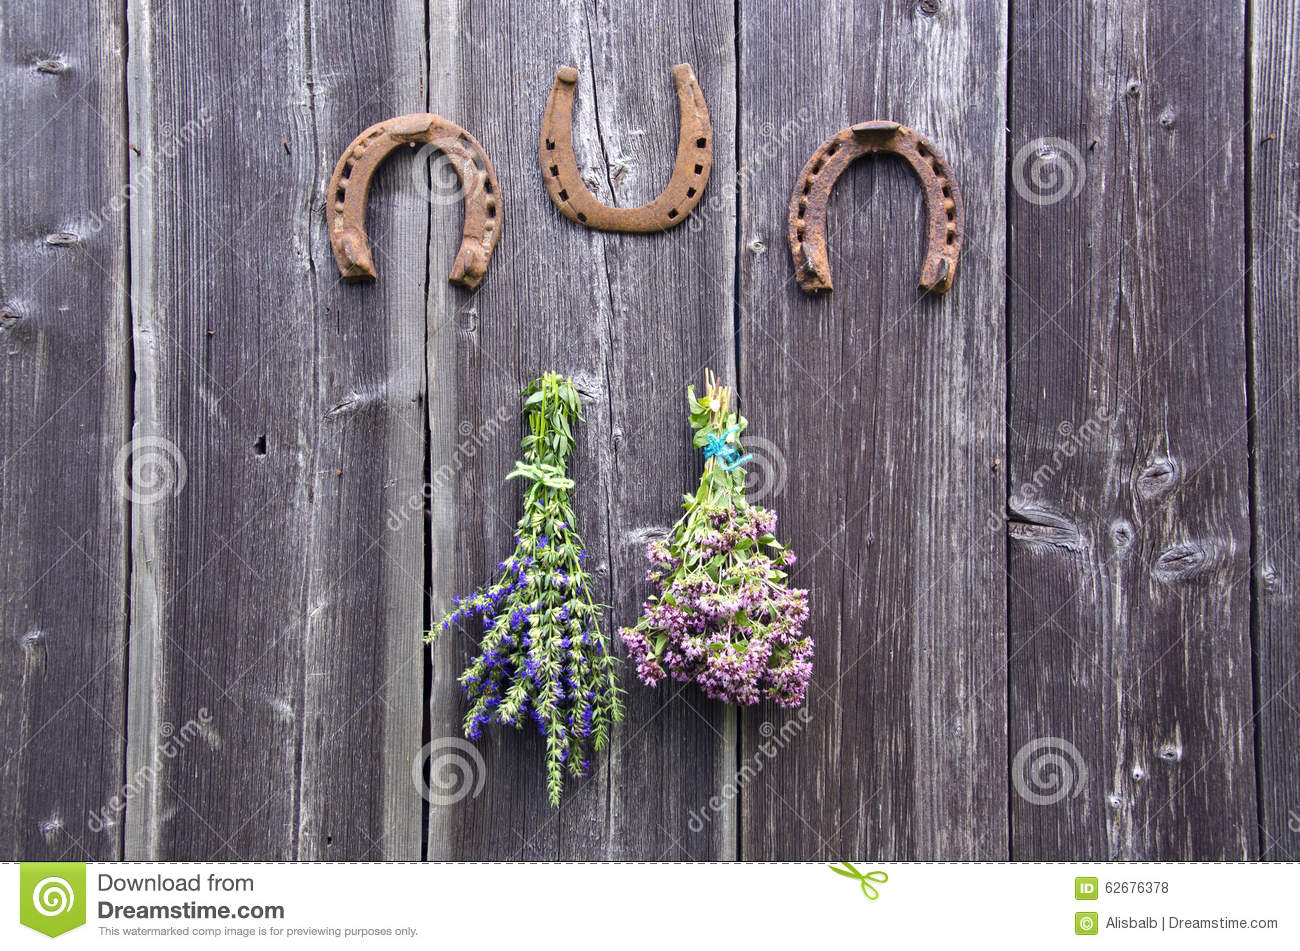 Two bundles of oregano and hyssop herbs and three horseshoes on wall